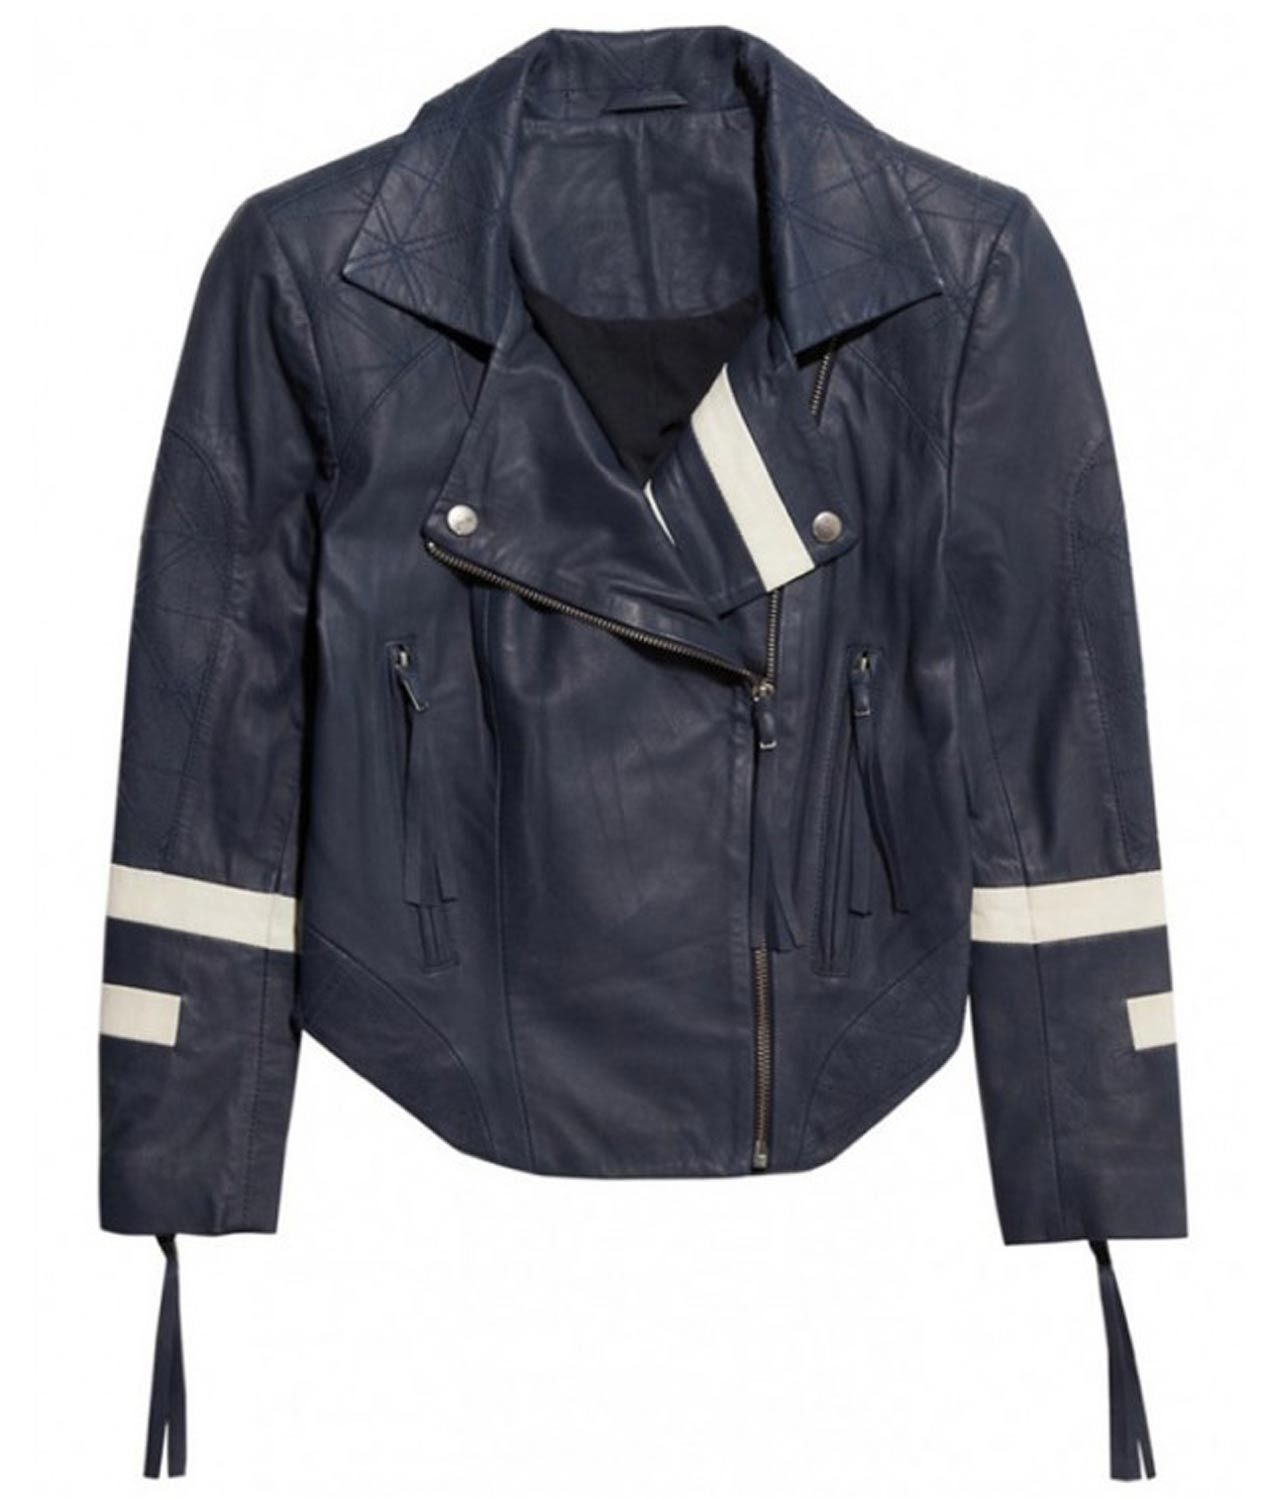 Agents of Shield Chloe Bennet Blue Leather Jacket